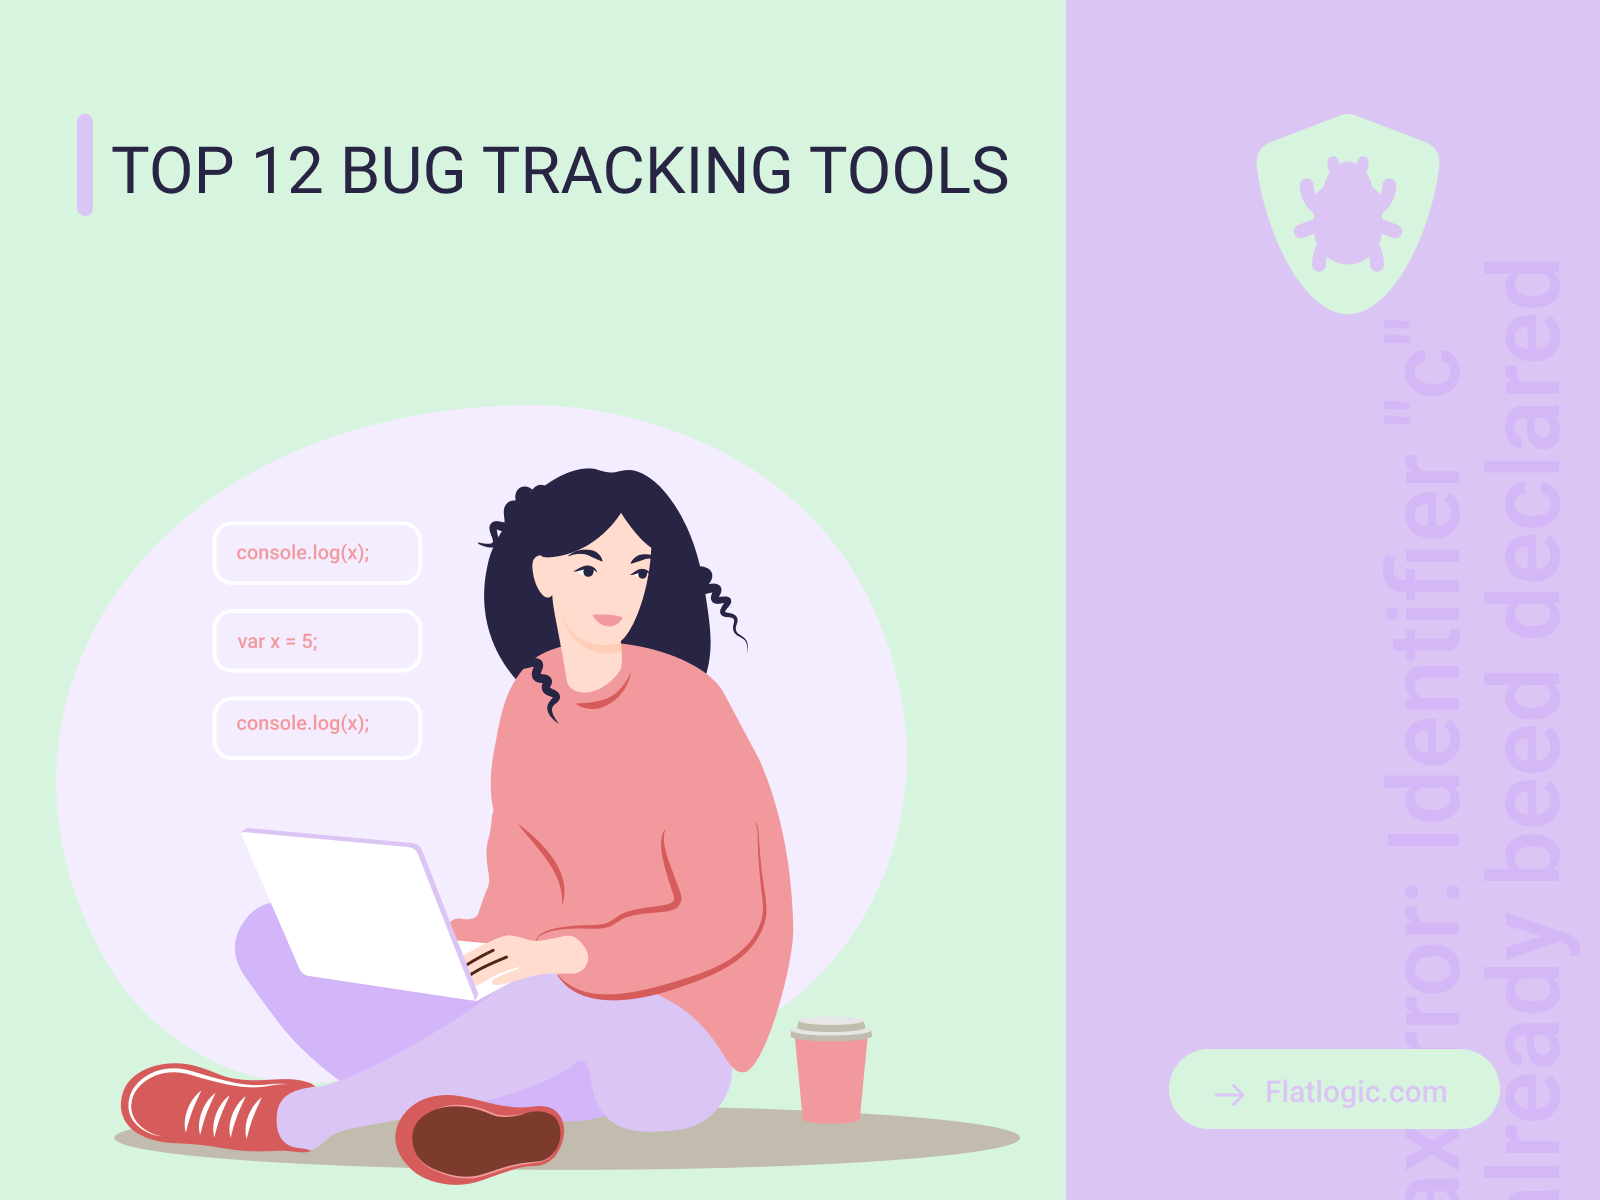 Top 12 Bug Tracking Tools